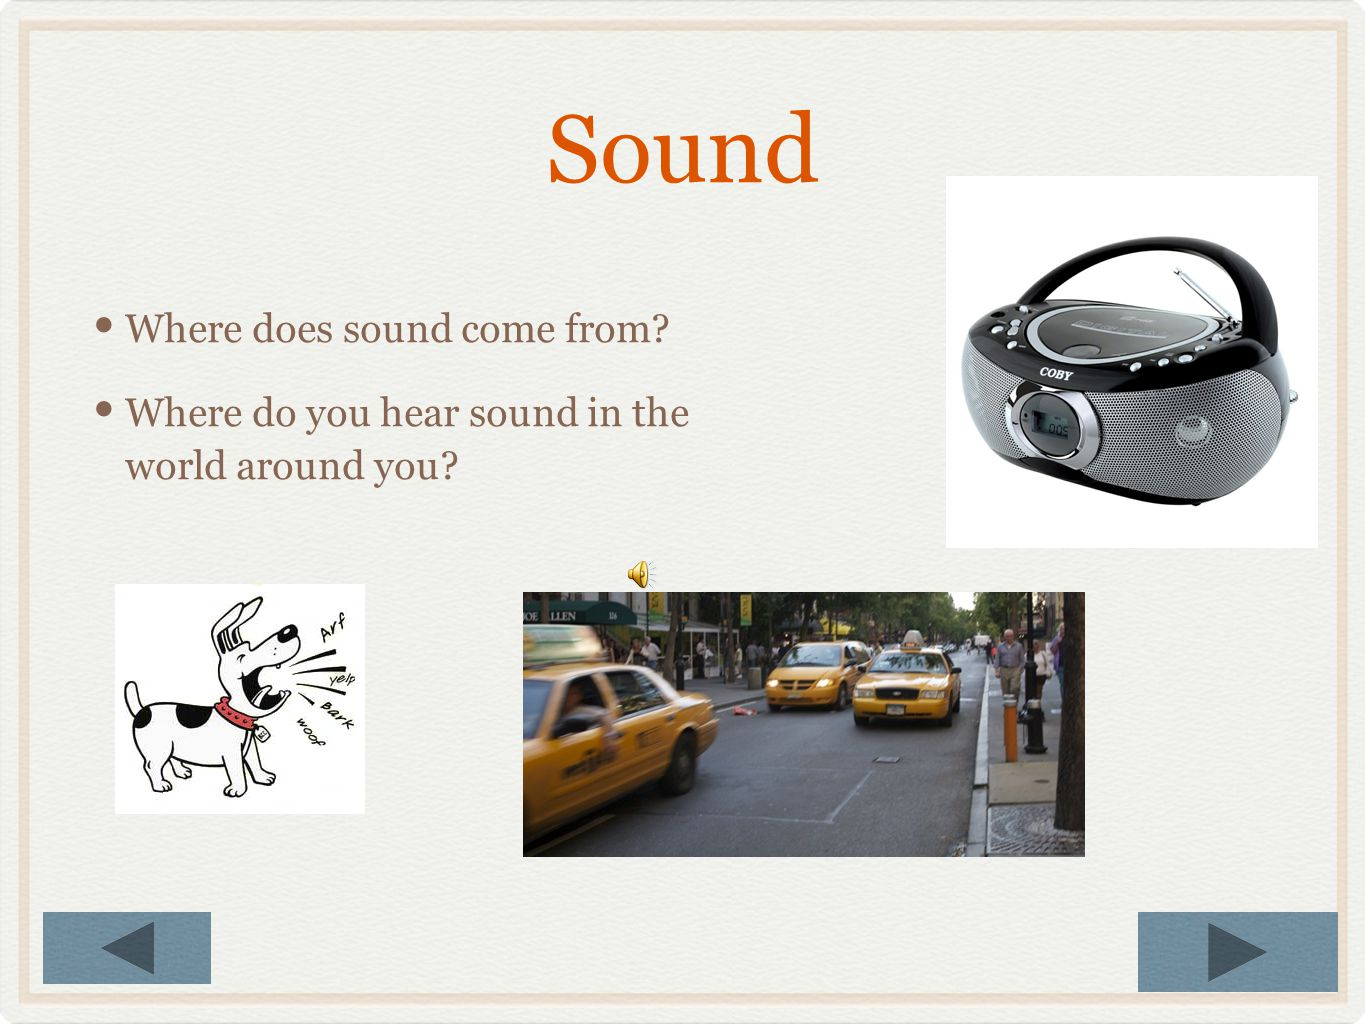 How Does Sound Travel Through Air To Reach Your Ear